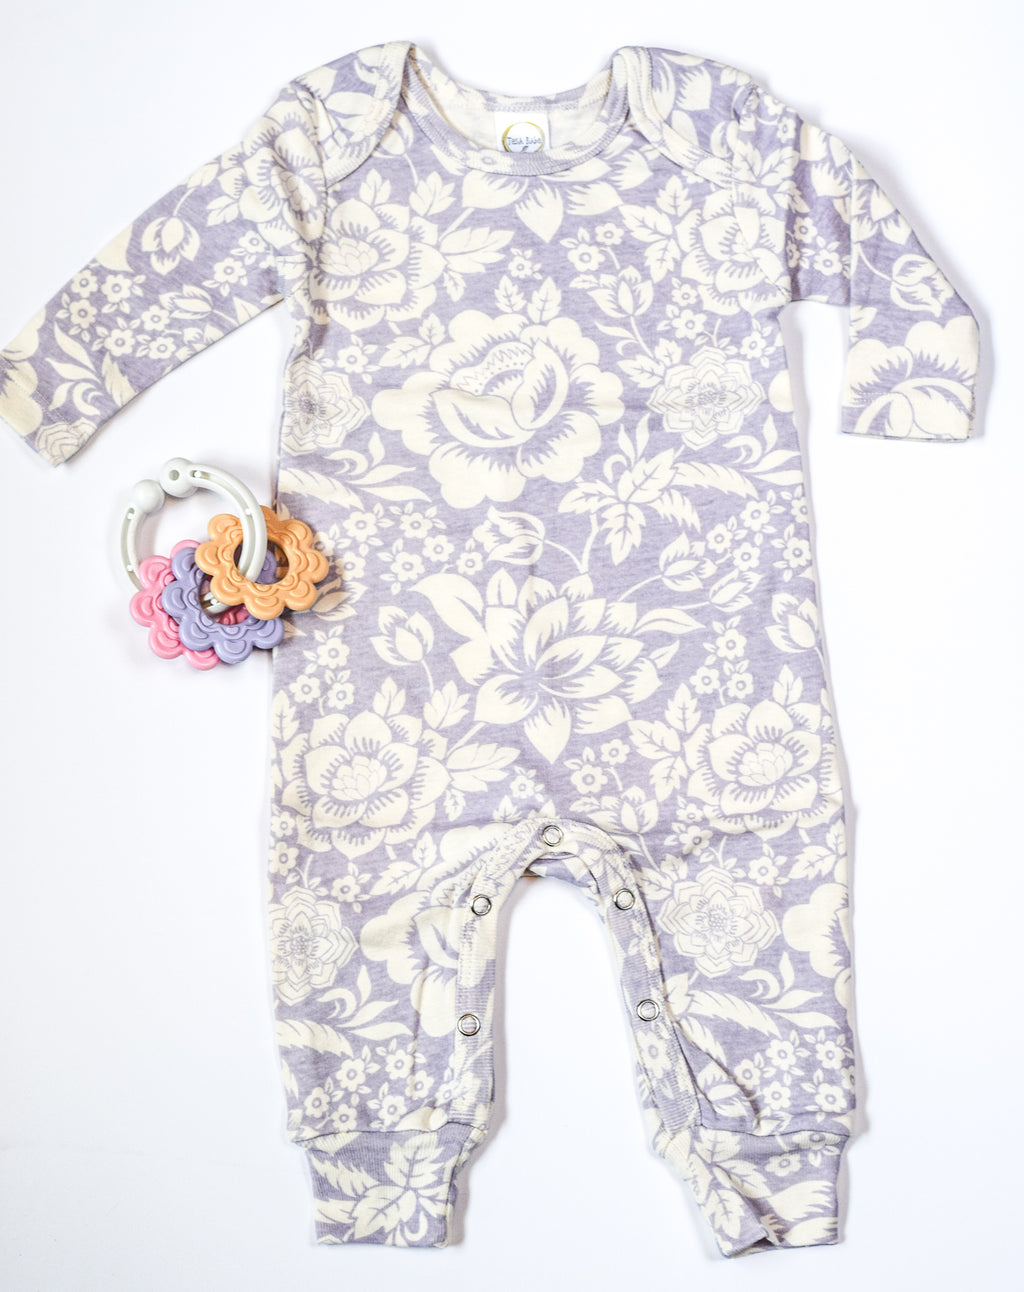 Lavender and Lovely Onesie